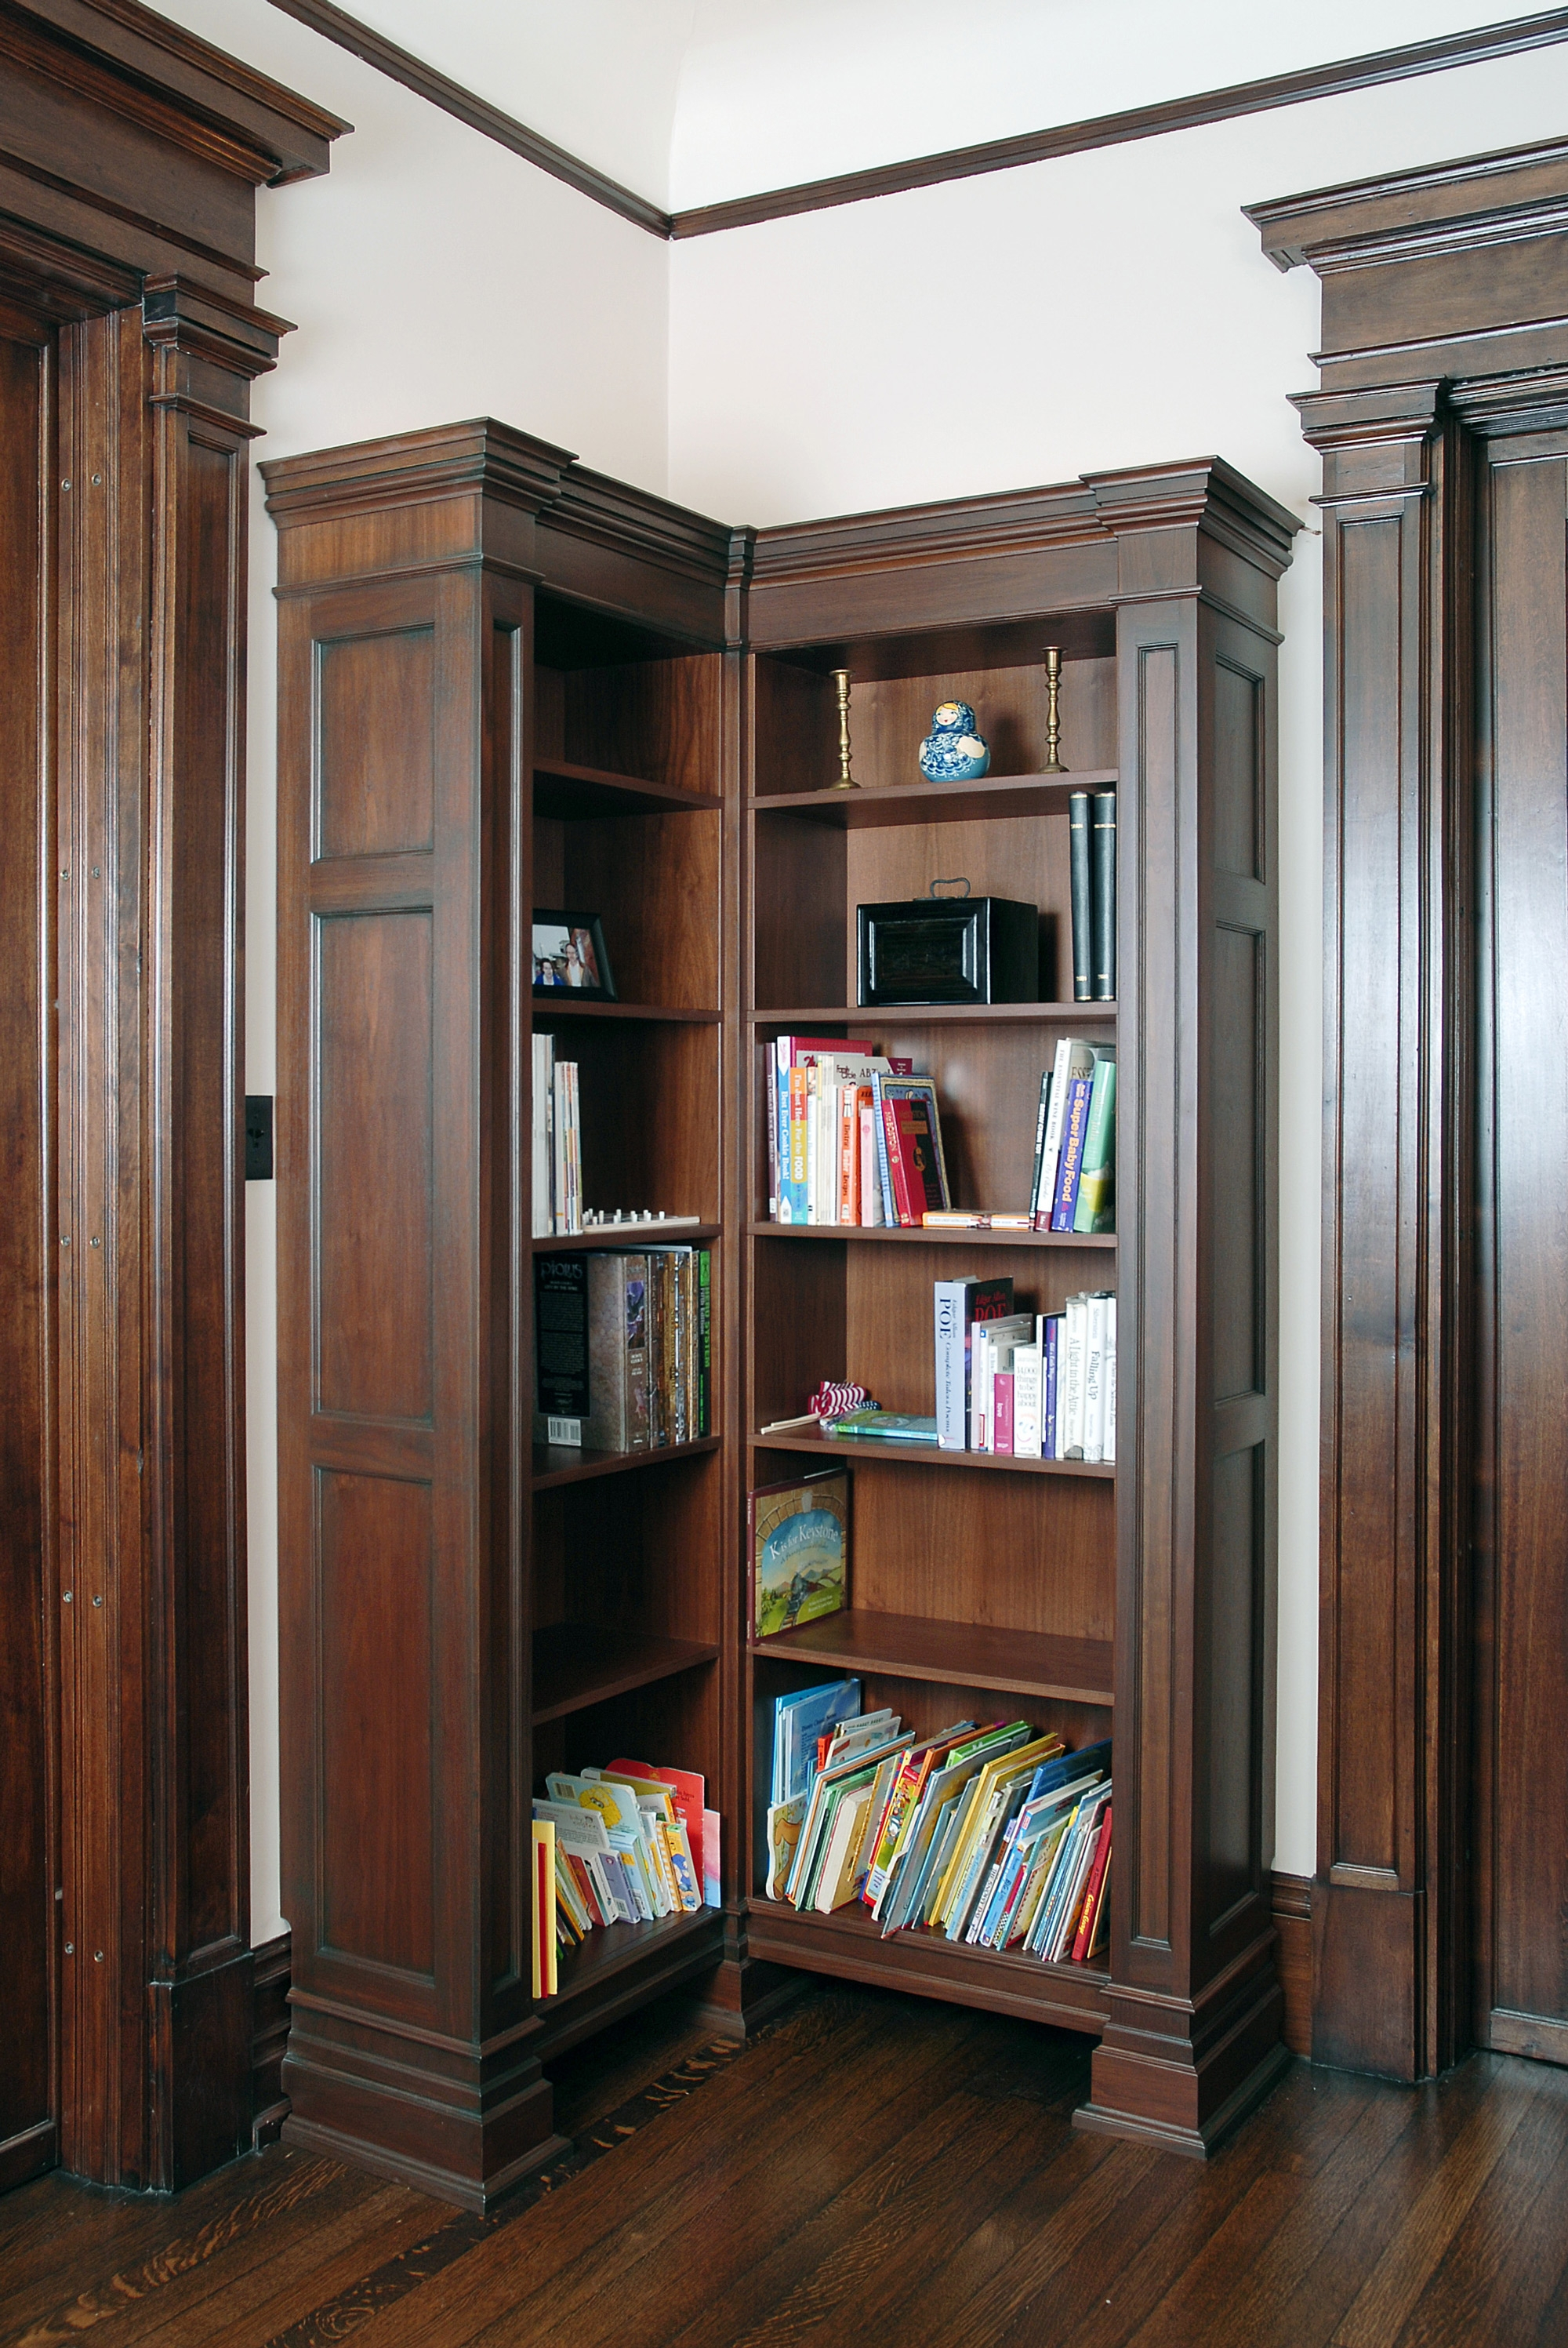 Walnut Bookcases In Existing Library Custom Cabinetry Ken Leech Regarding Corner Library Bookcase (View 15 of 15)